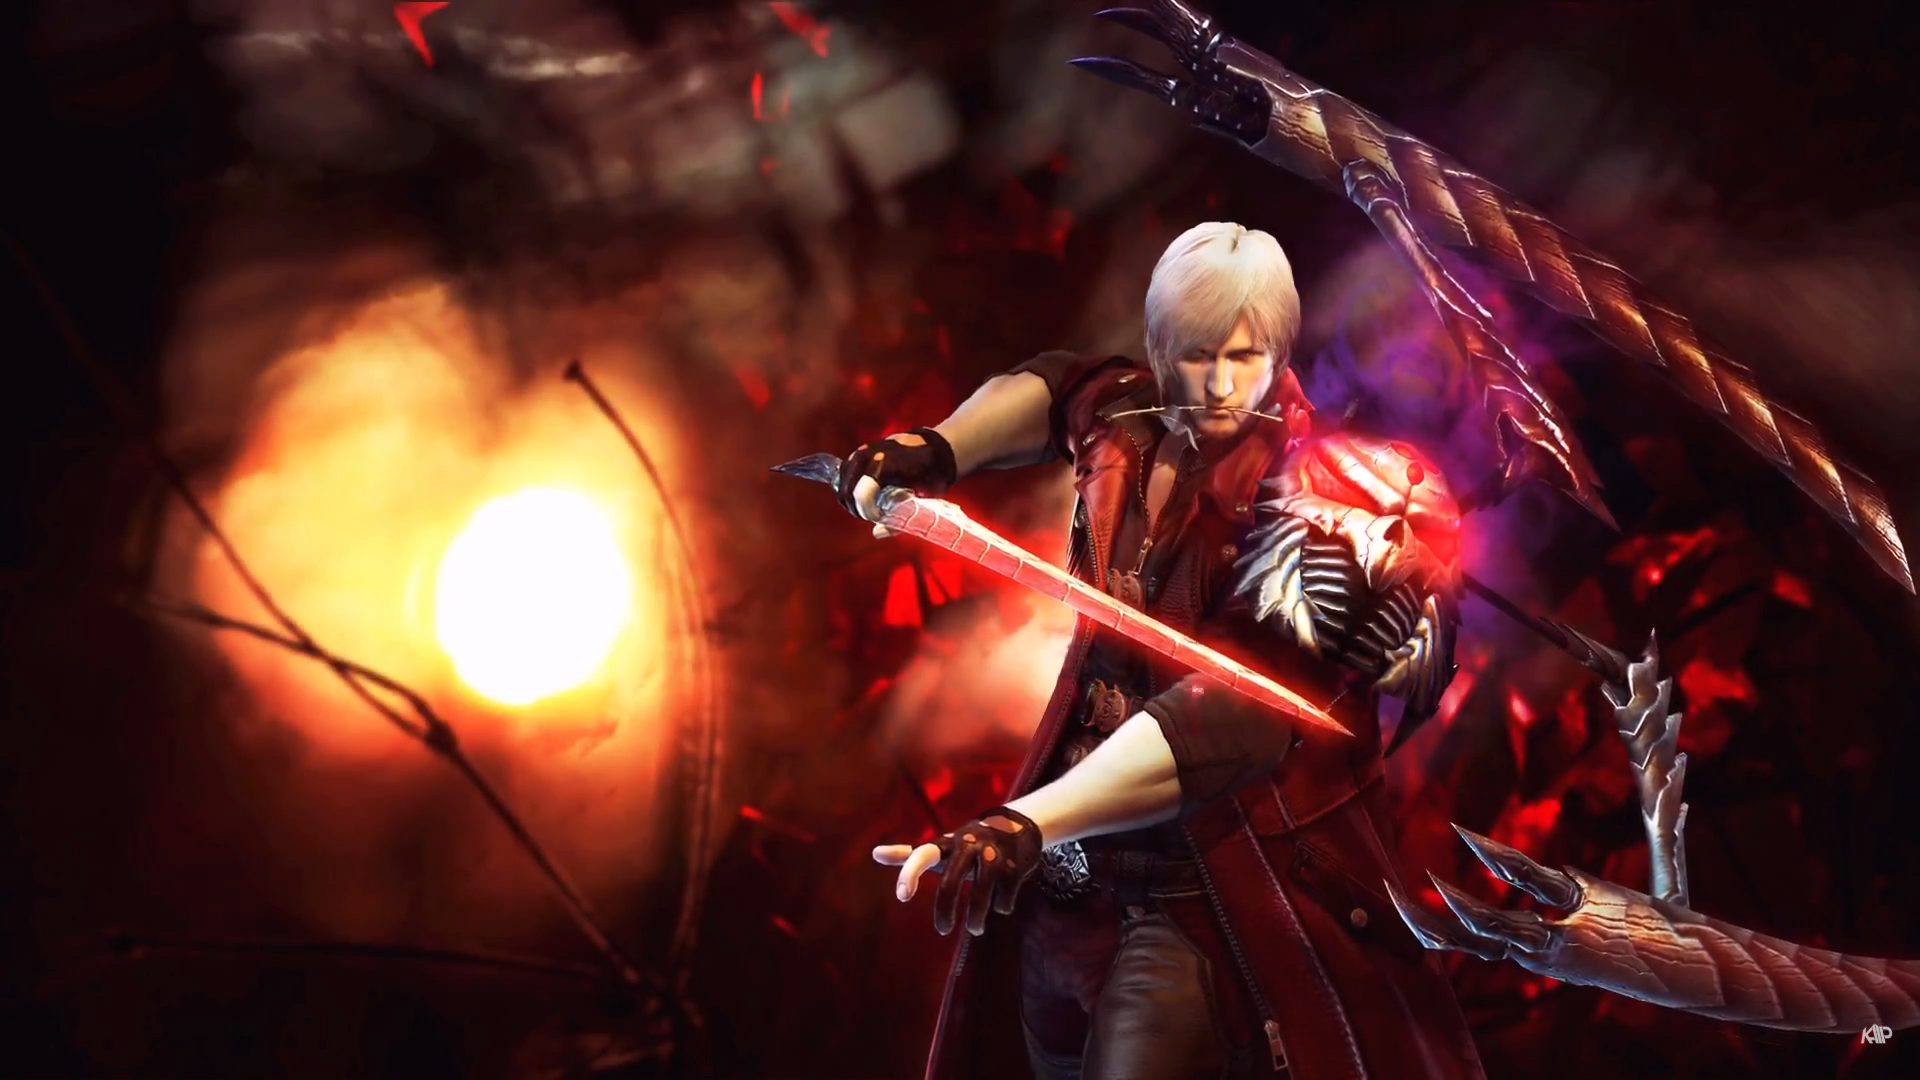 Devil May Cry 4 Wallpaper Collection Choosetab